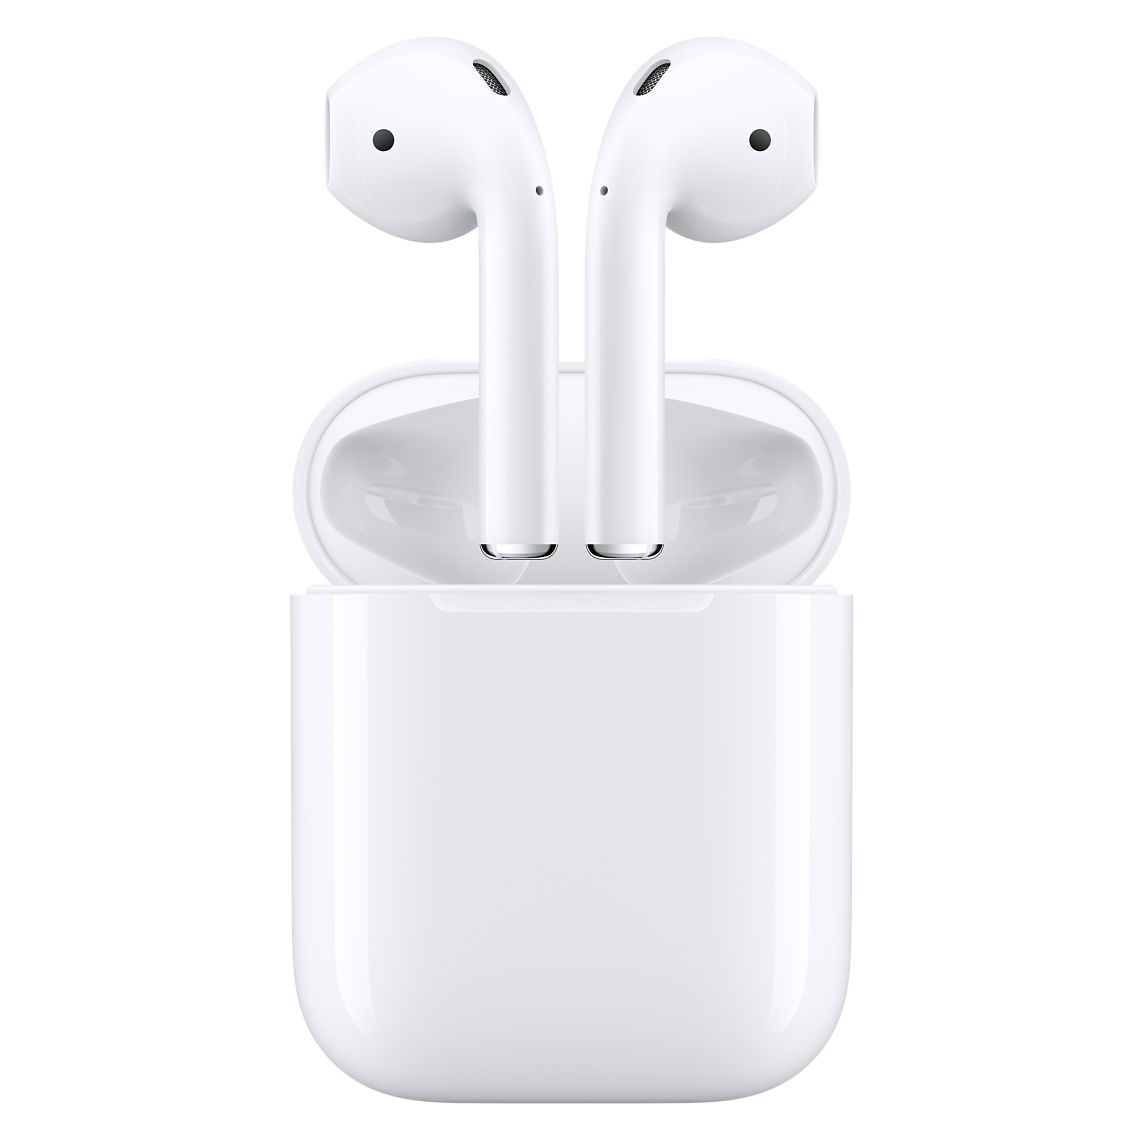 Despite Some Drawbacks Including Their Funky Look The Airpods Are The Best Value For This New Breed Of Totally Wireless Headph In 2020 Apple Products Wireless Earbuds Iphone Accessories